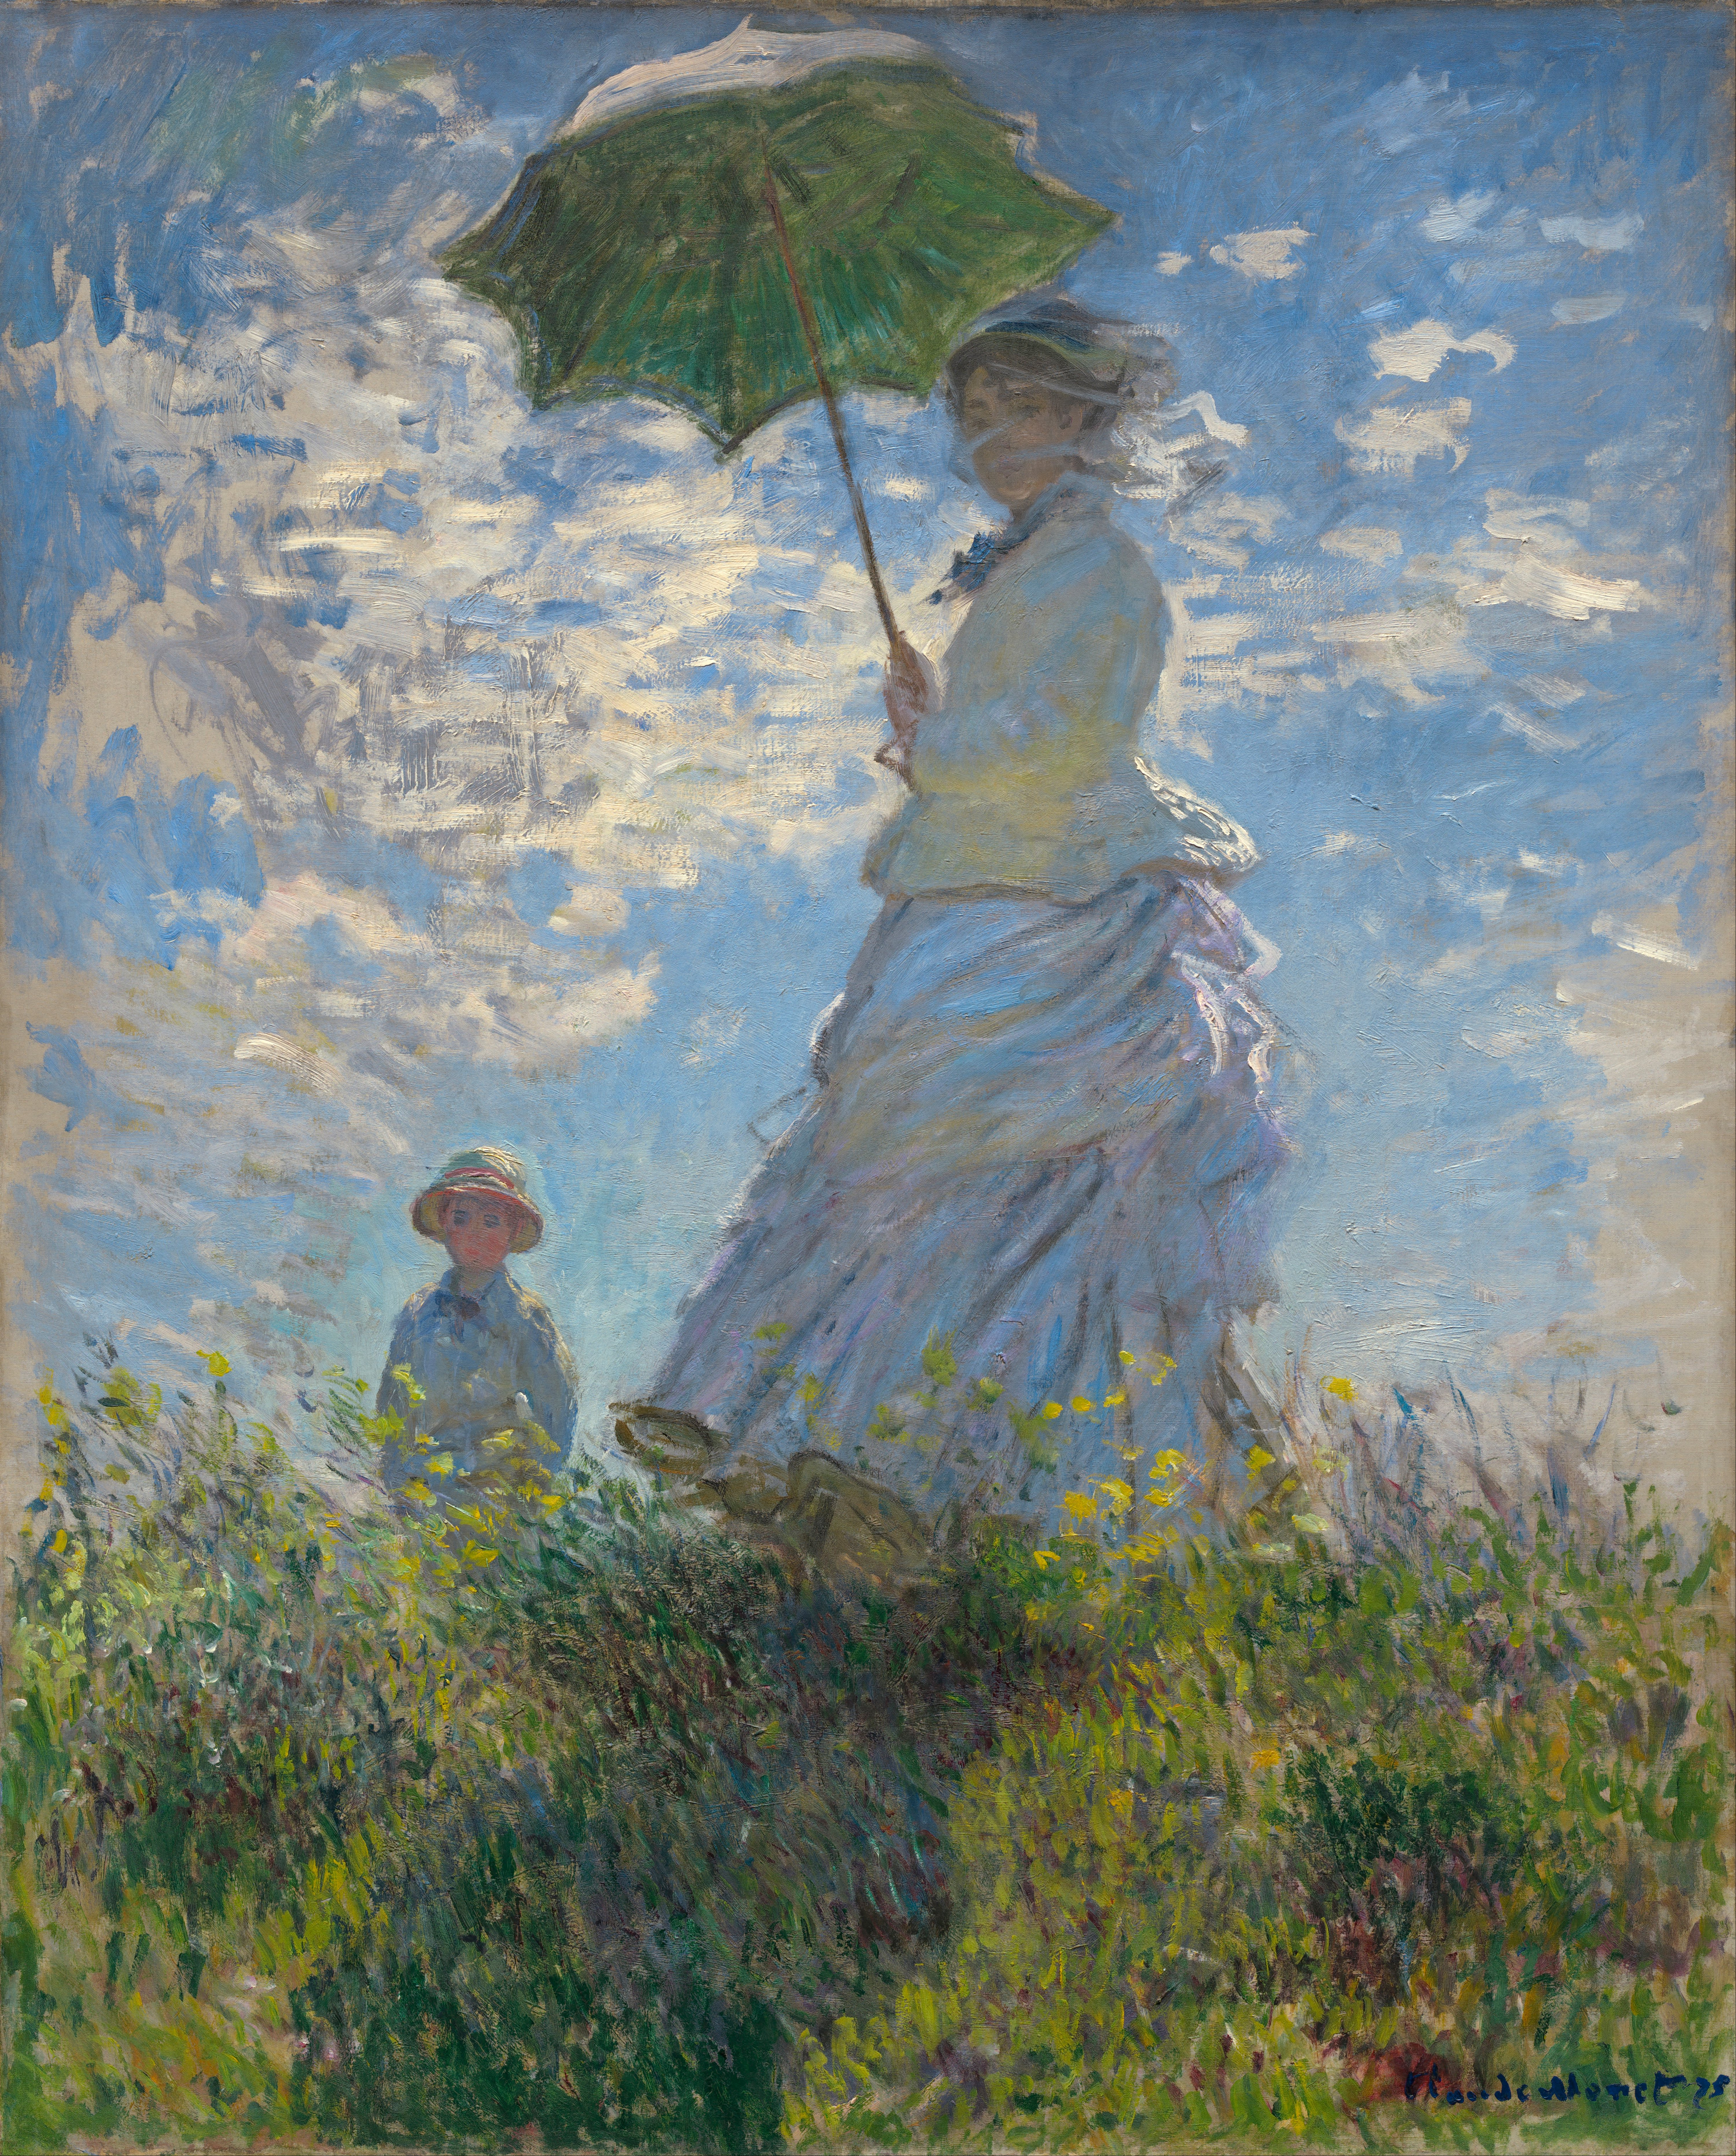 http://upload.wikimedia.org/wikipedia/commons/1/1b/Claude_Monet_-_Woman_with_a_Parasol_-_Madame_Monet_and_Her_Son_-_Google_Art_Project.jpg